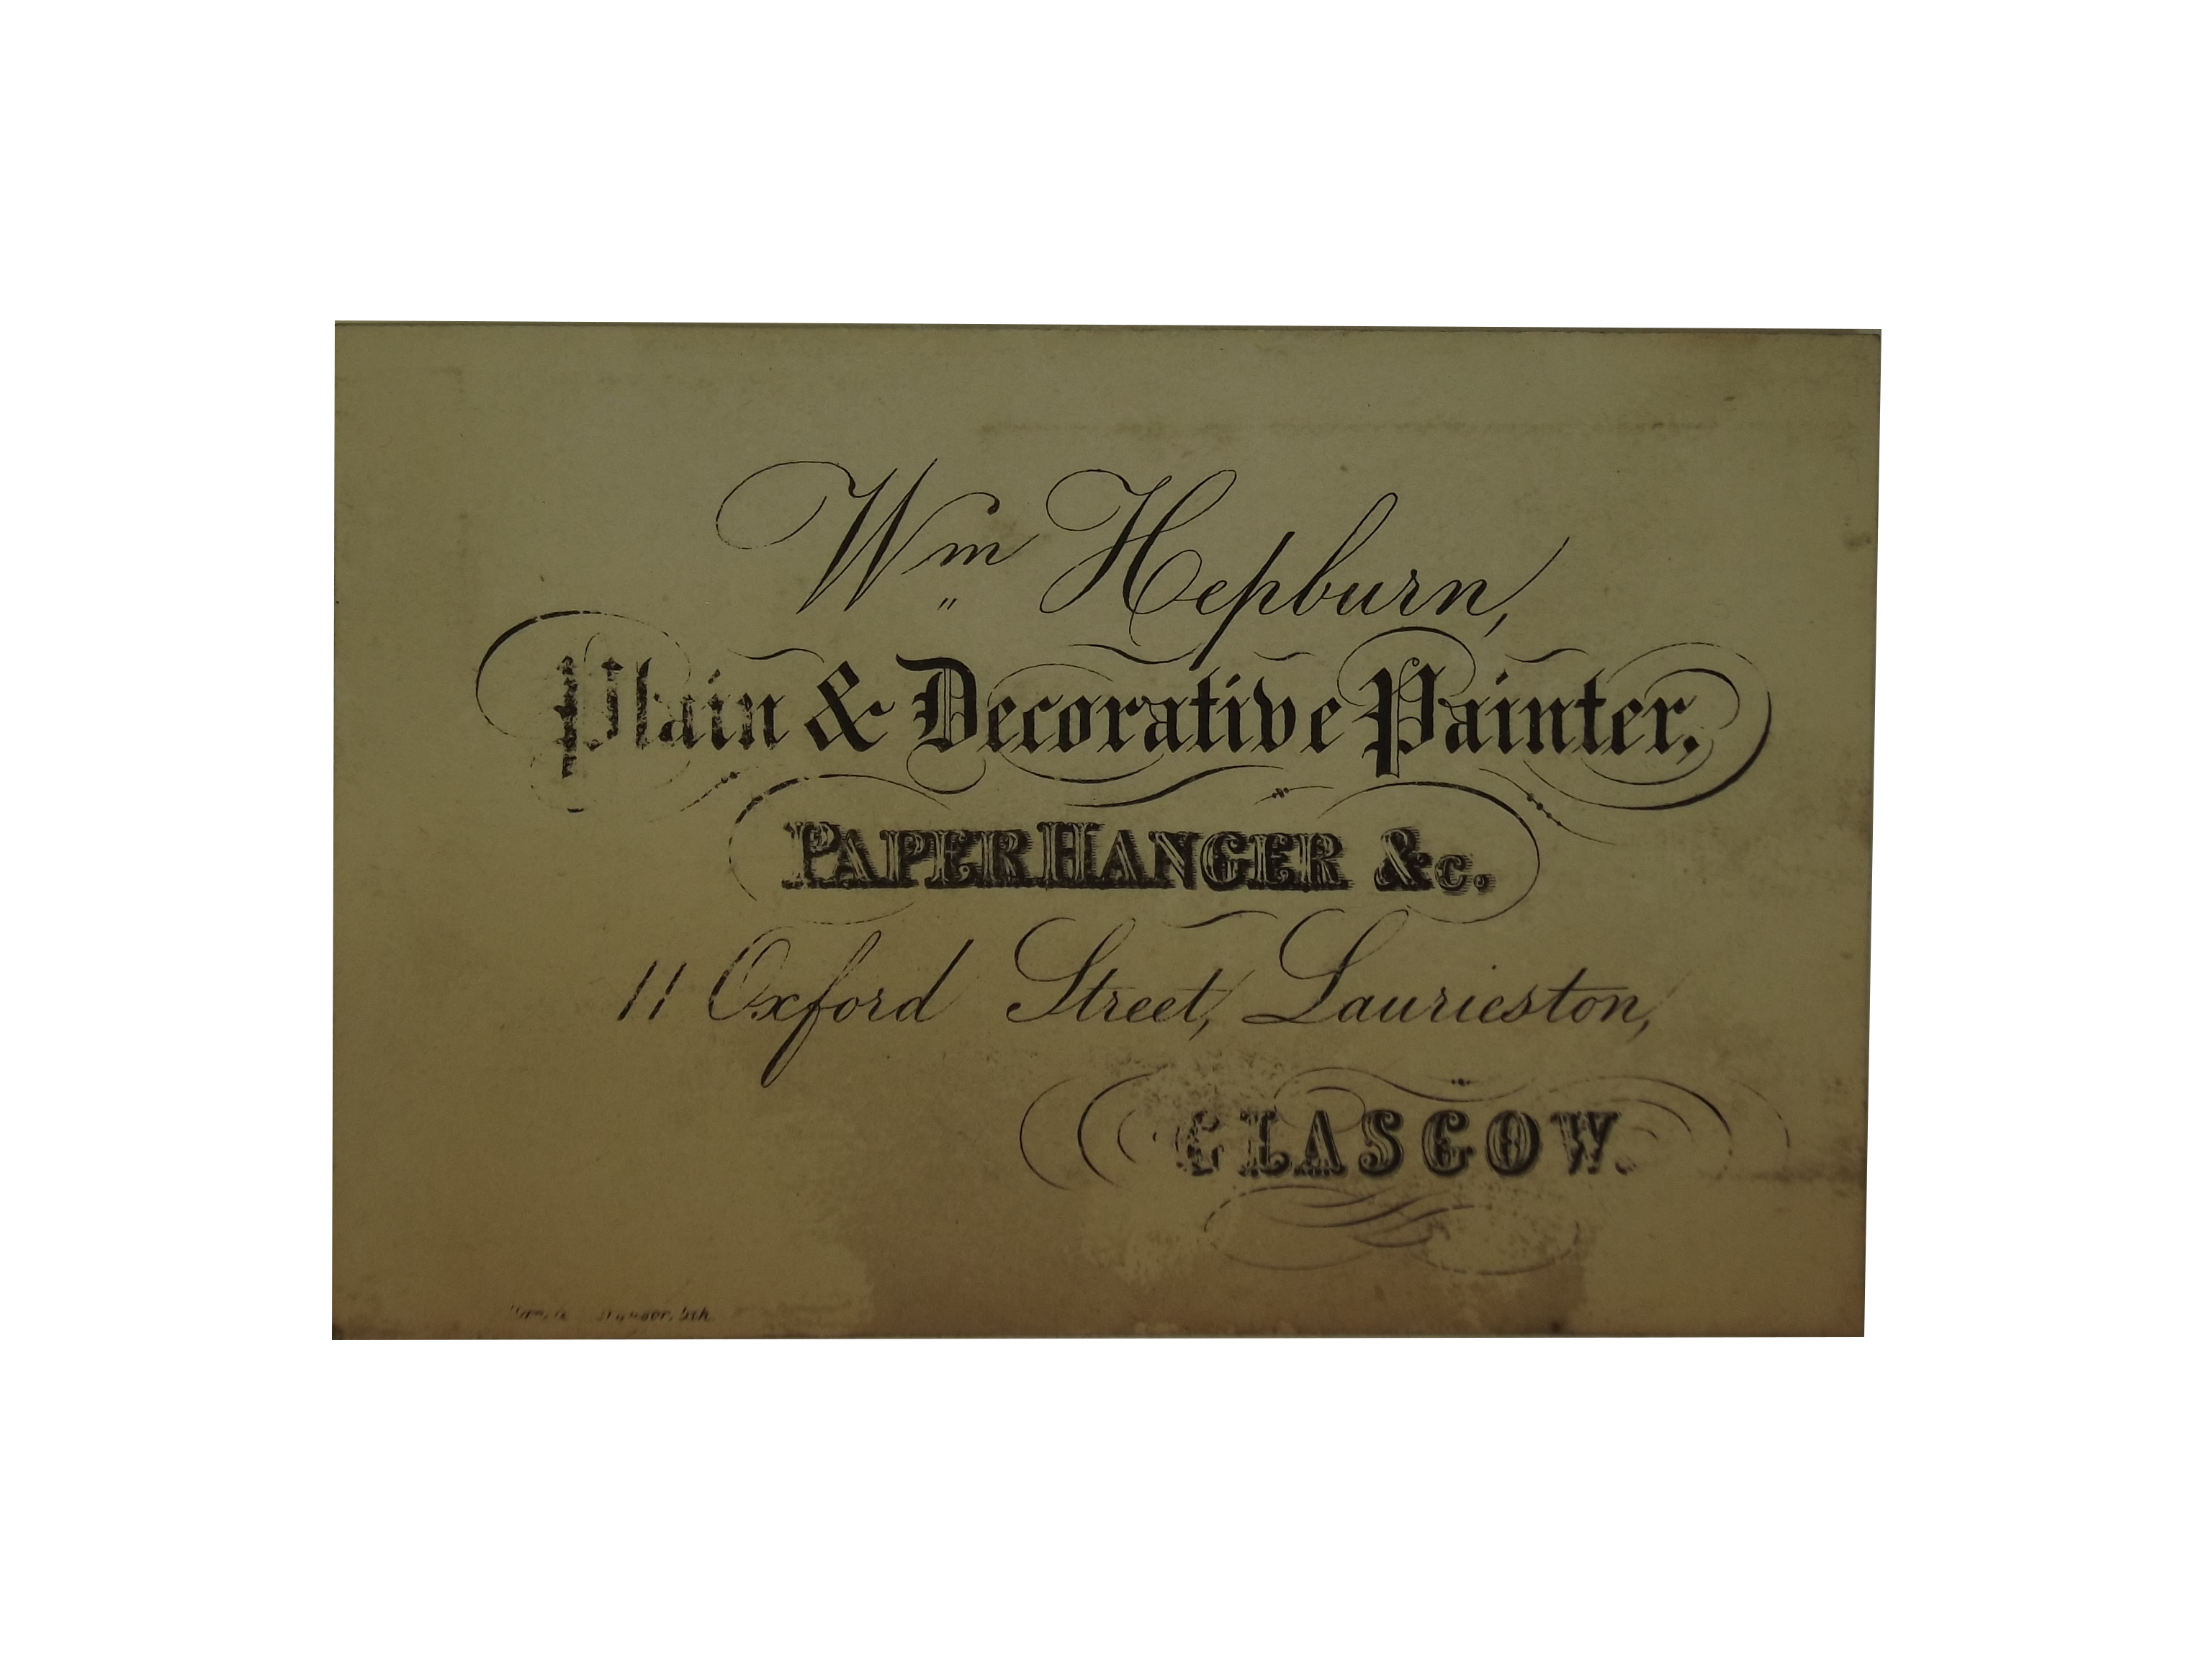 Painter and Paper Hanger Trade Card